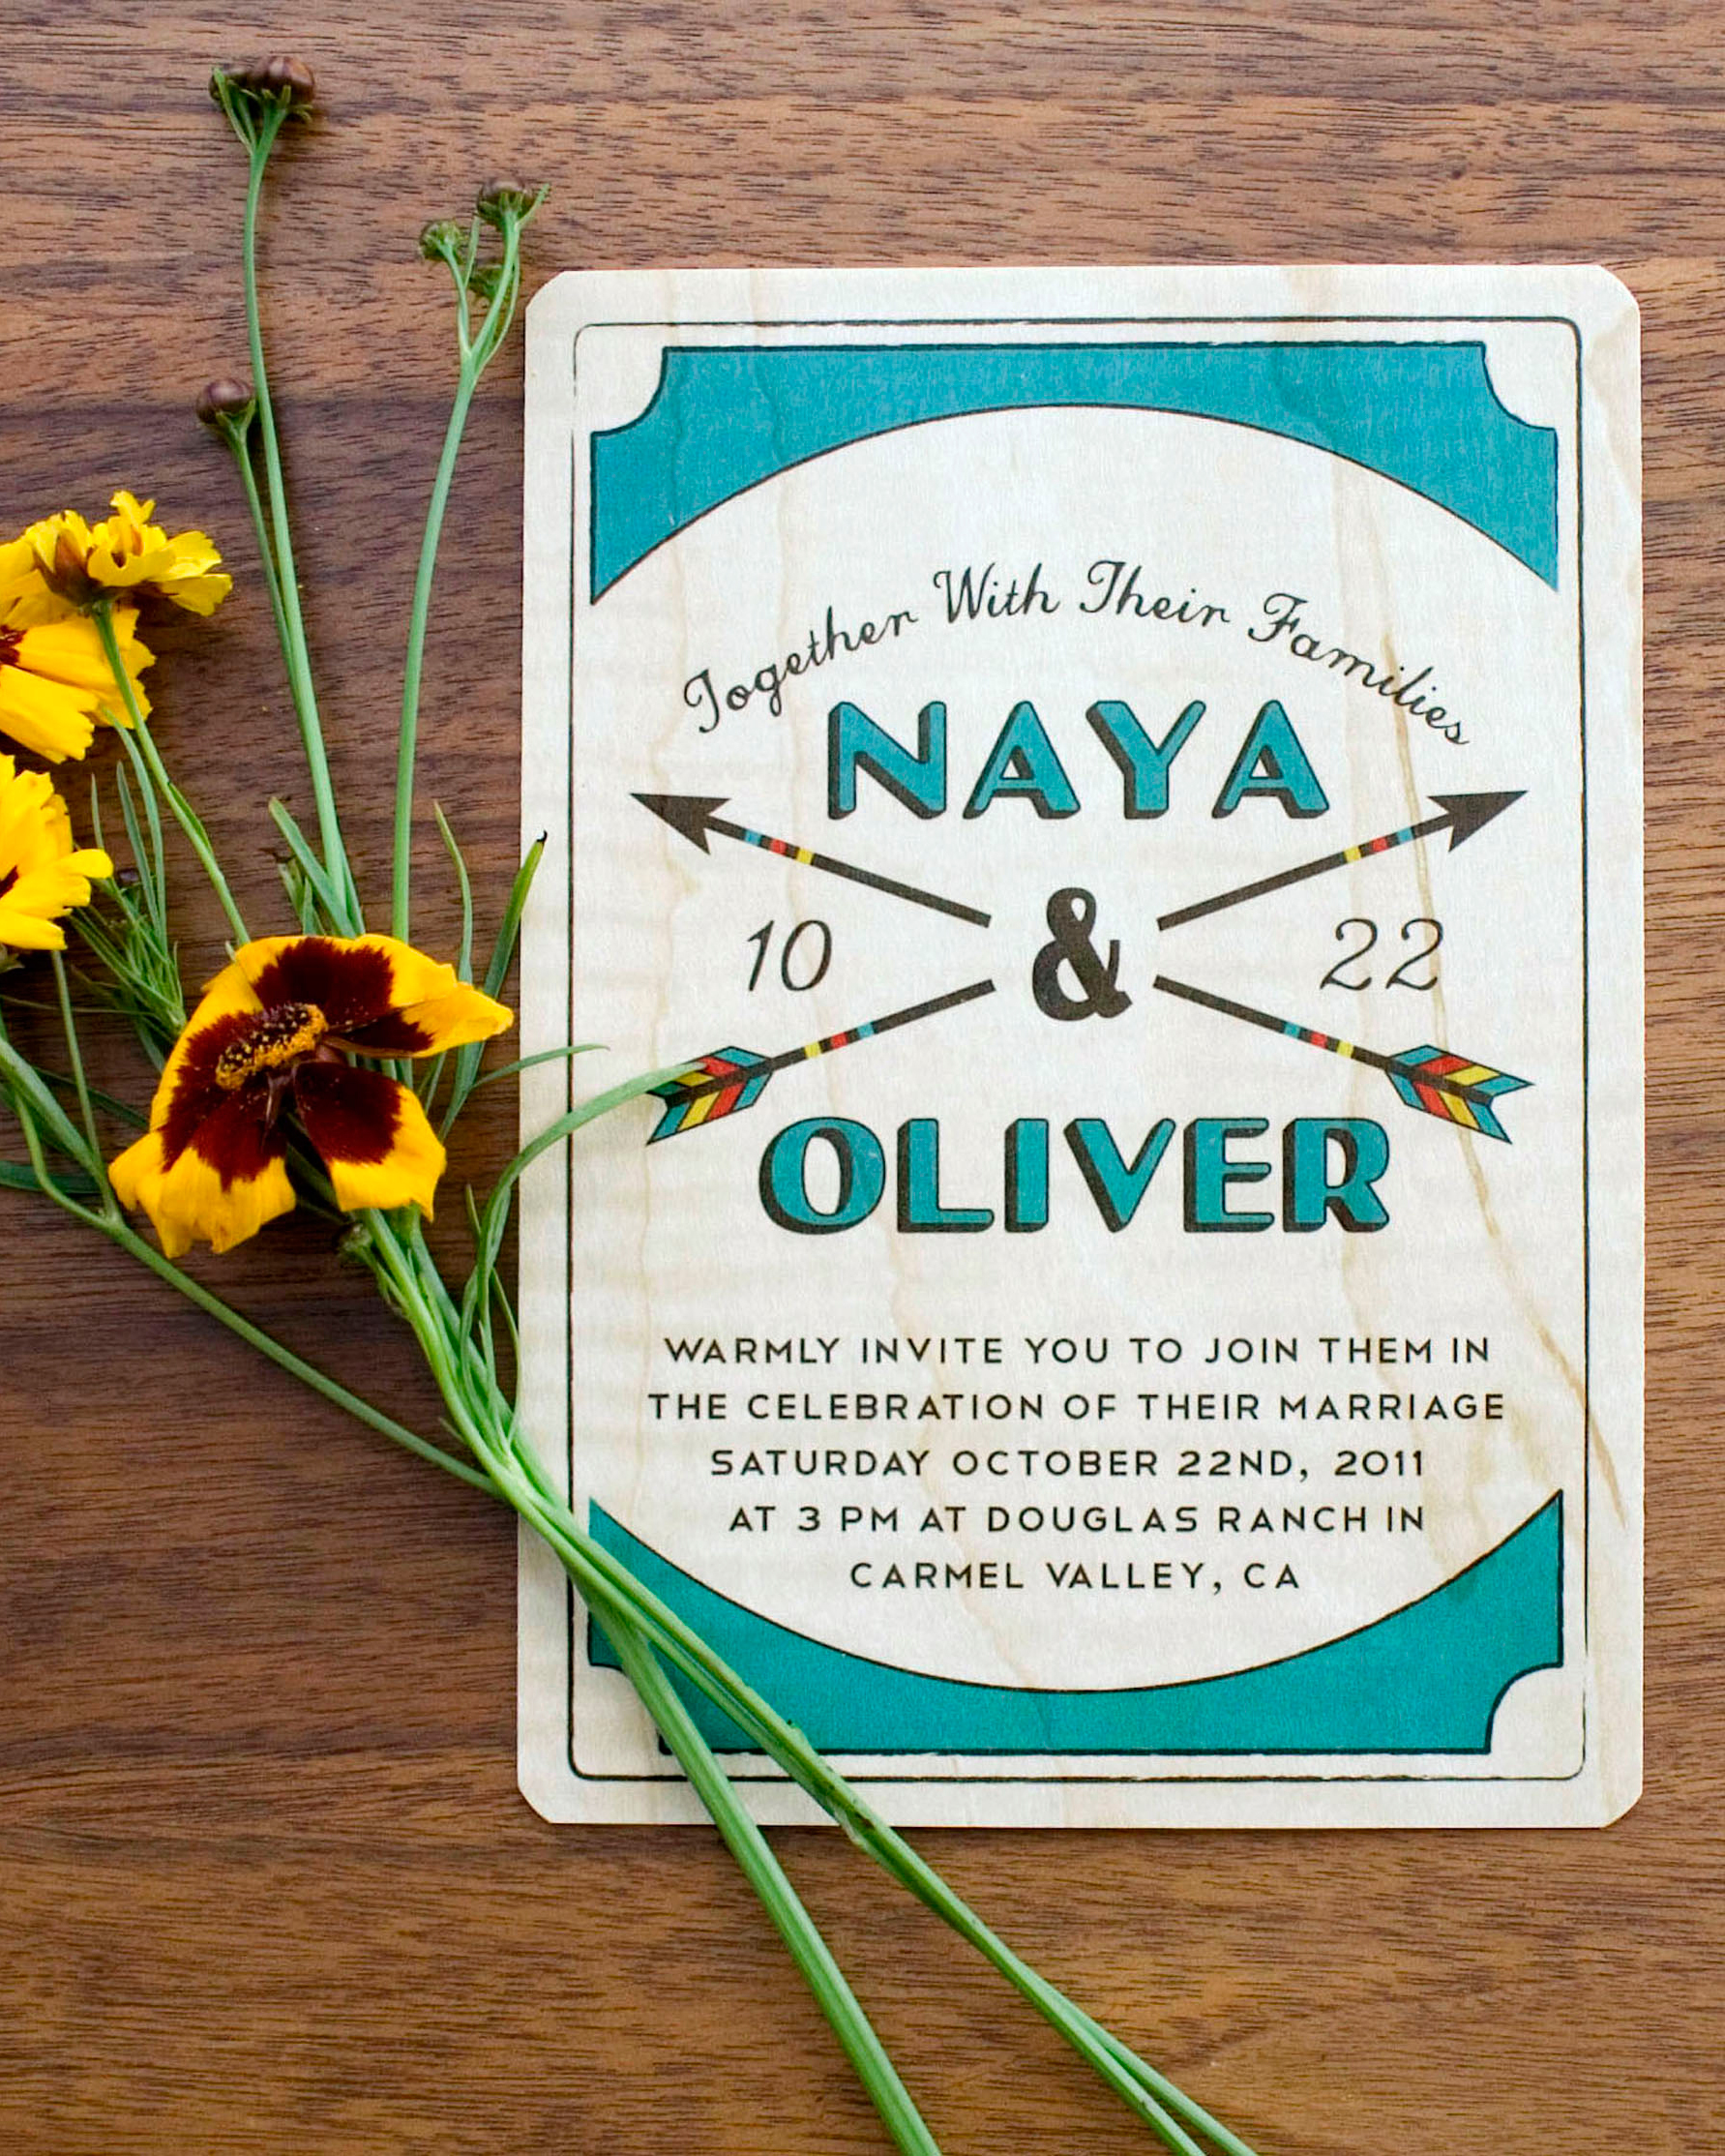 Best Wedding Invitation Sites: 8 Details To Include When Wording Your Wedding Invitation